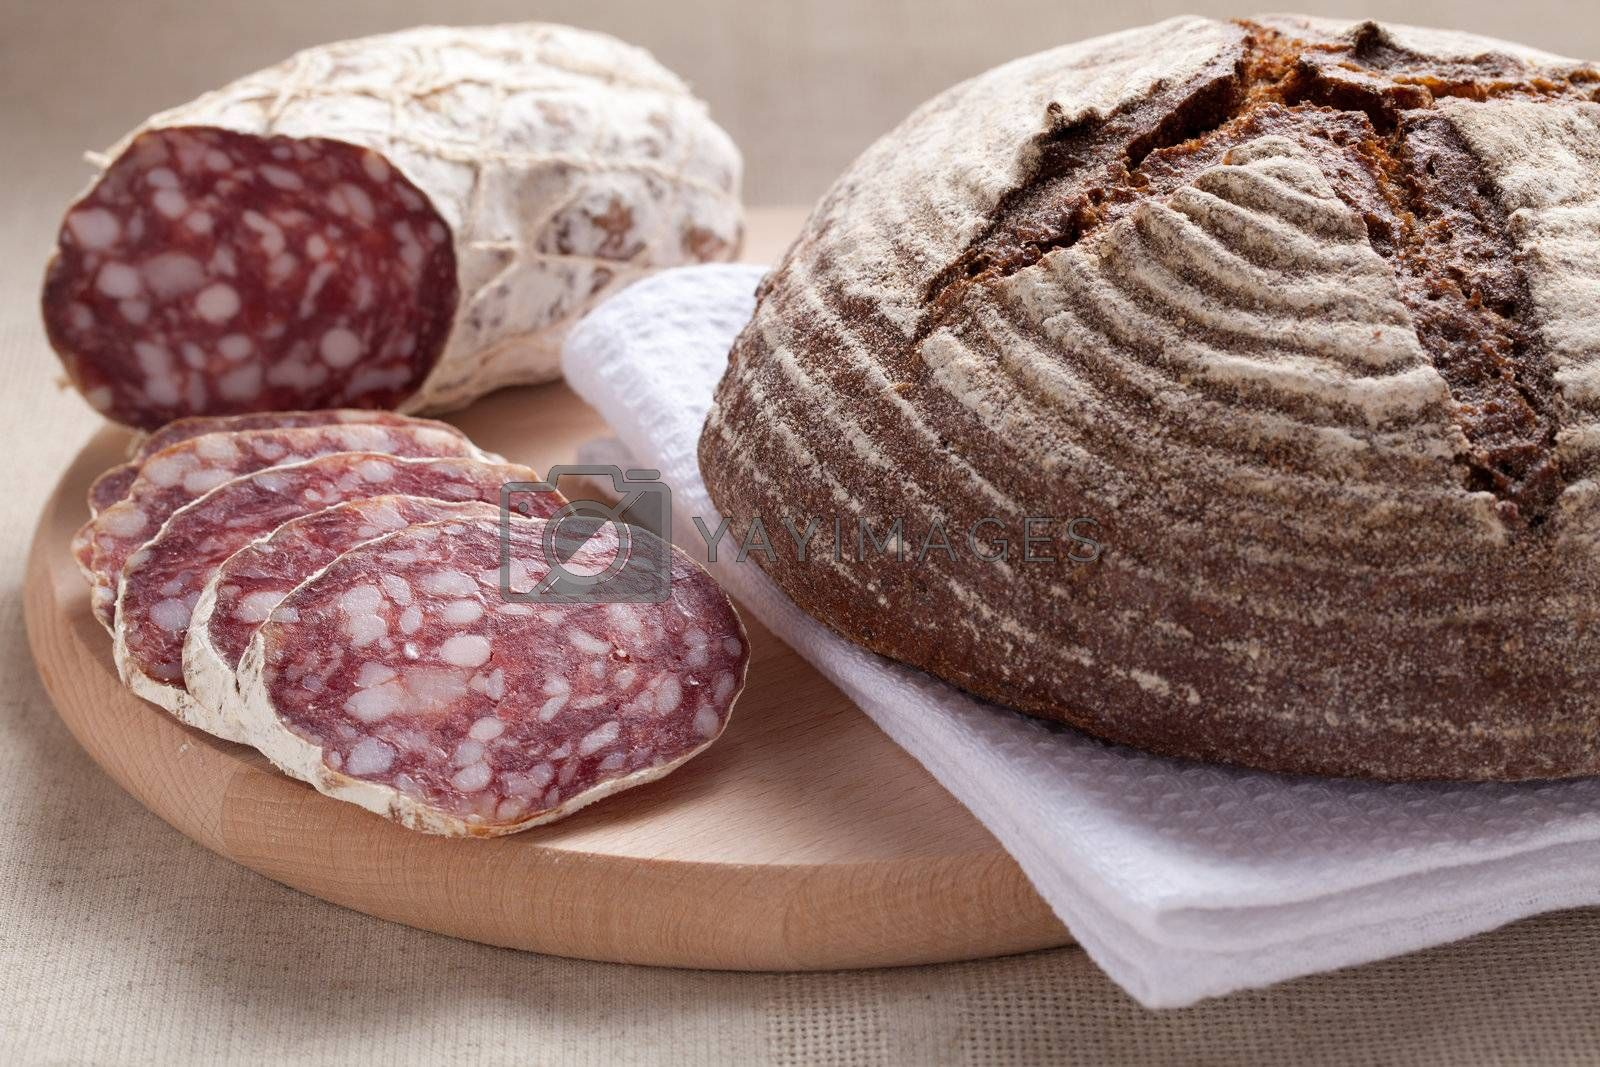 Royalty free image of Traditional sliced salami on wooden board with brown bread by SergeyAK